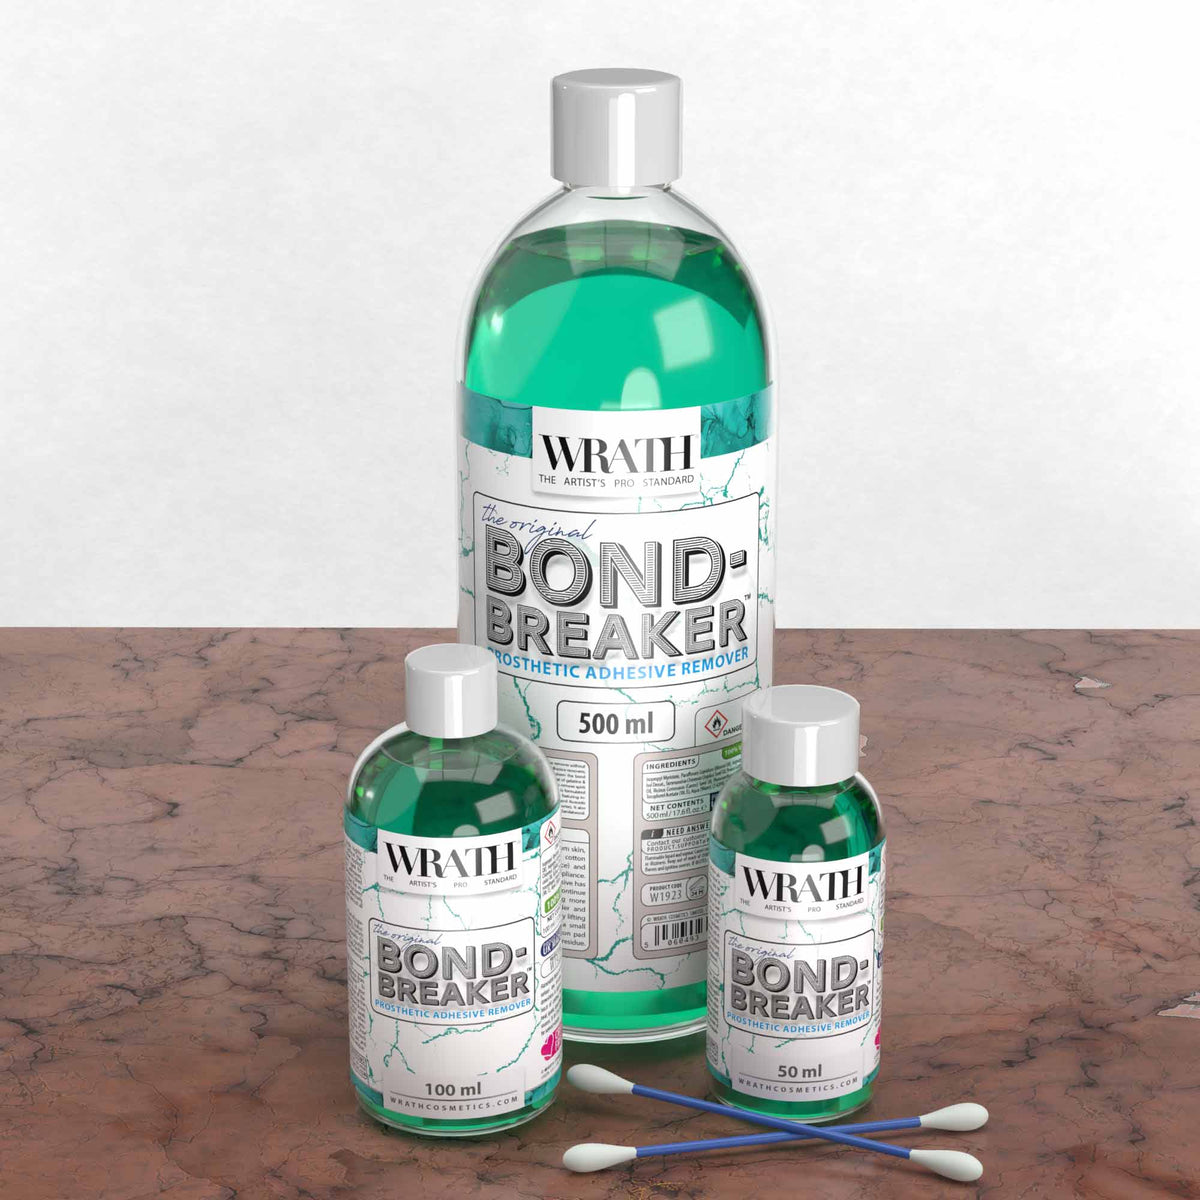 WRATH Bond-Breaker™ Prosthetic Adhesive Remover